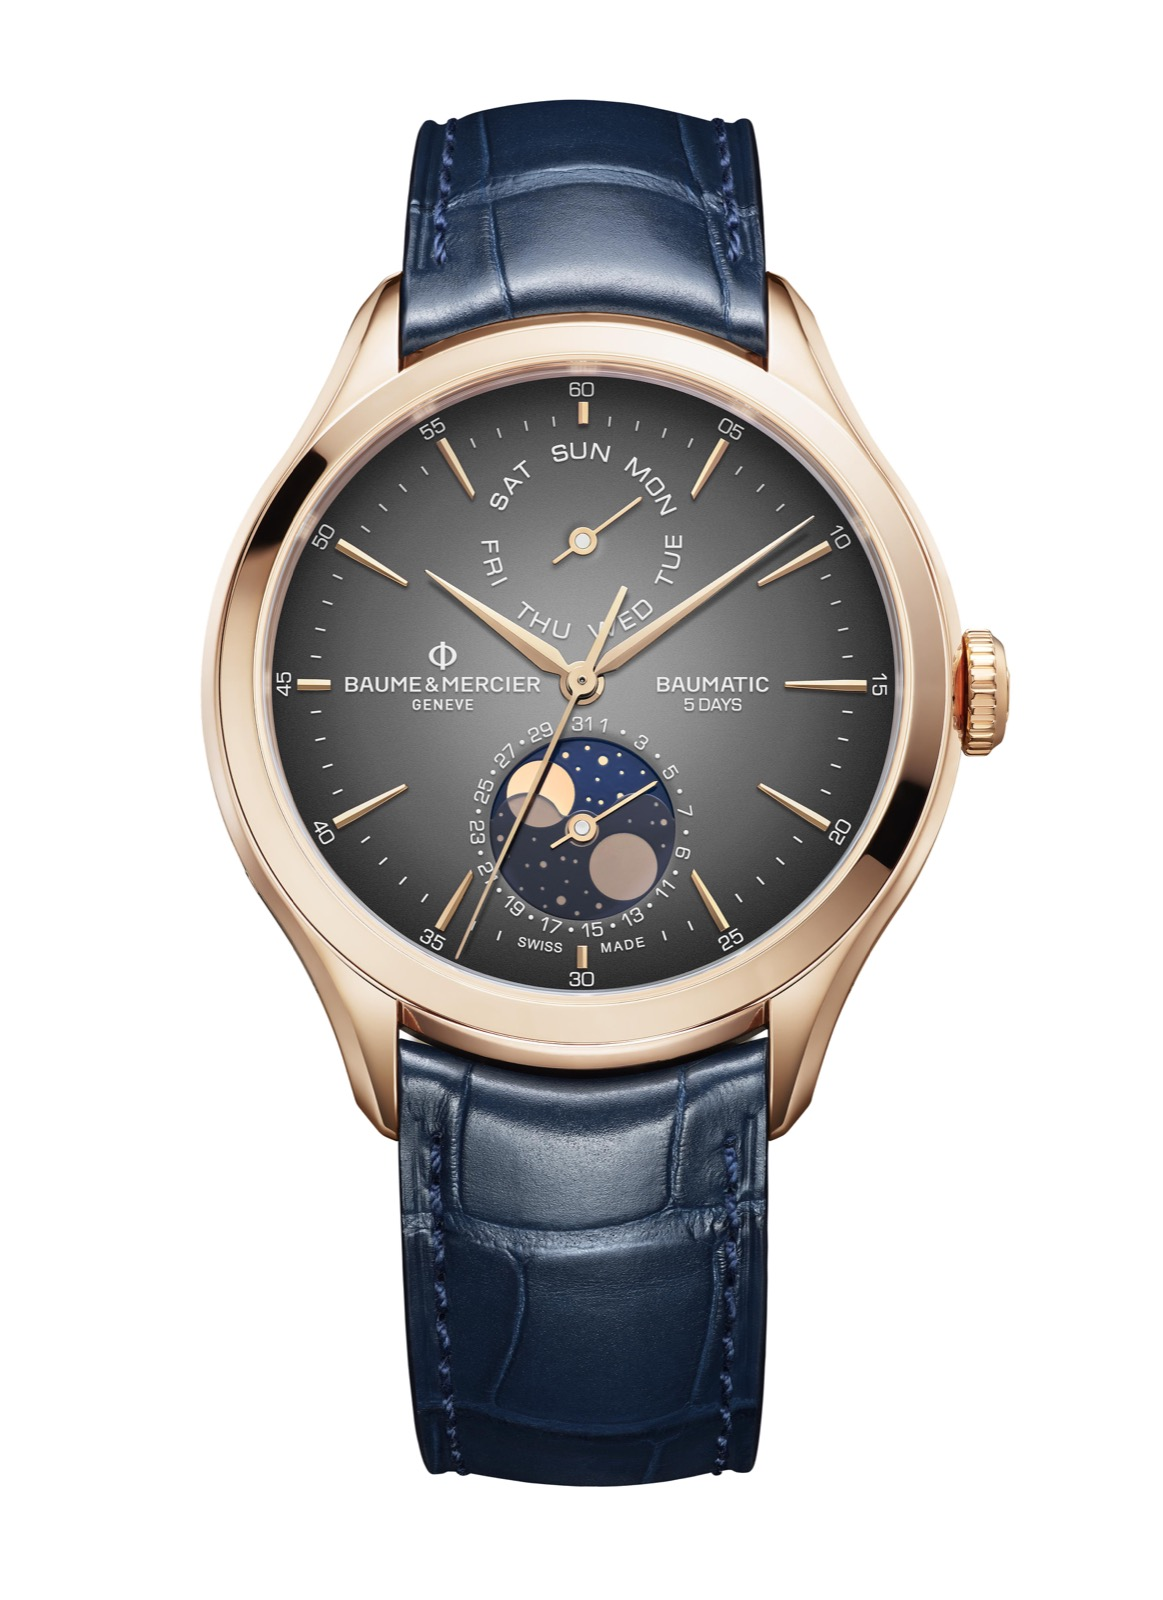 Baume et Mercier Baumatic Day-Date Moon Phase